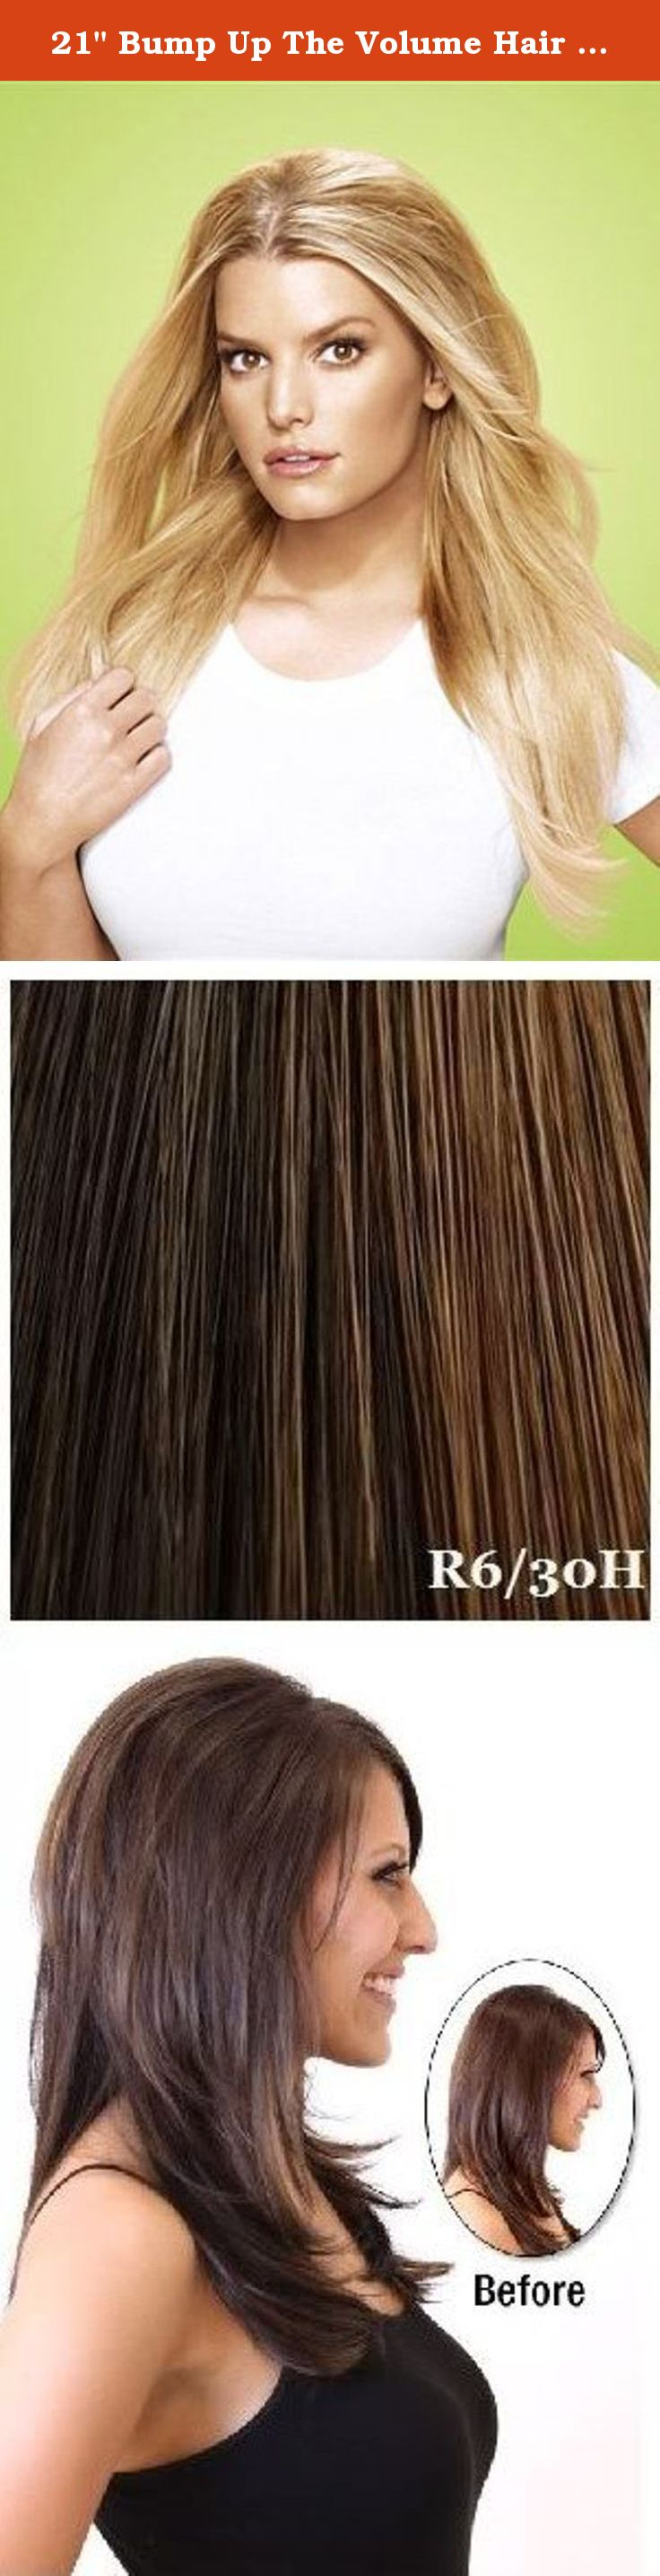 21 Bump Up The Volume Hair Extensions By Jessica Simpson Hairdo